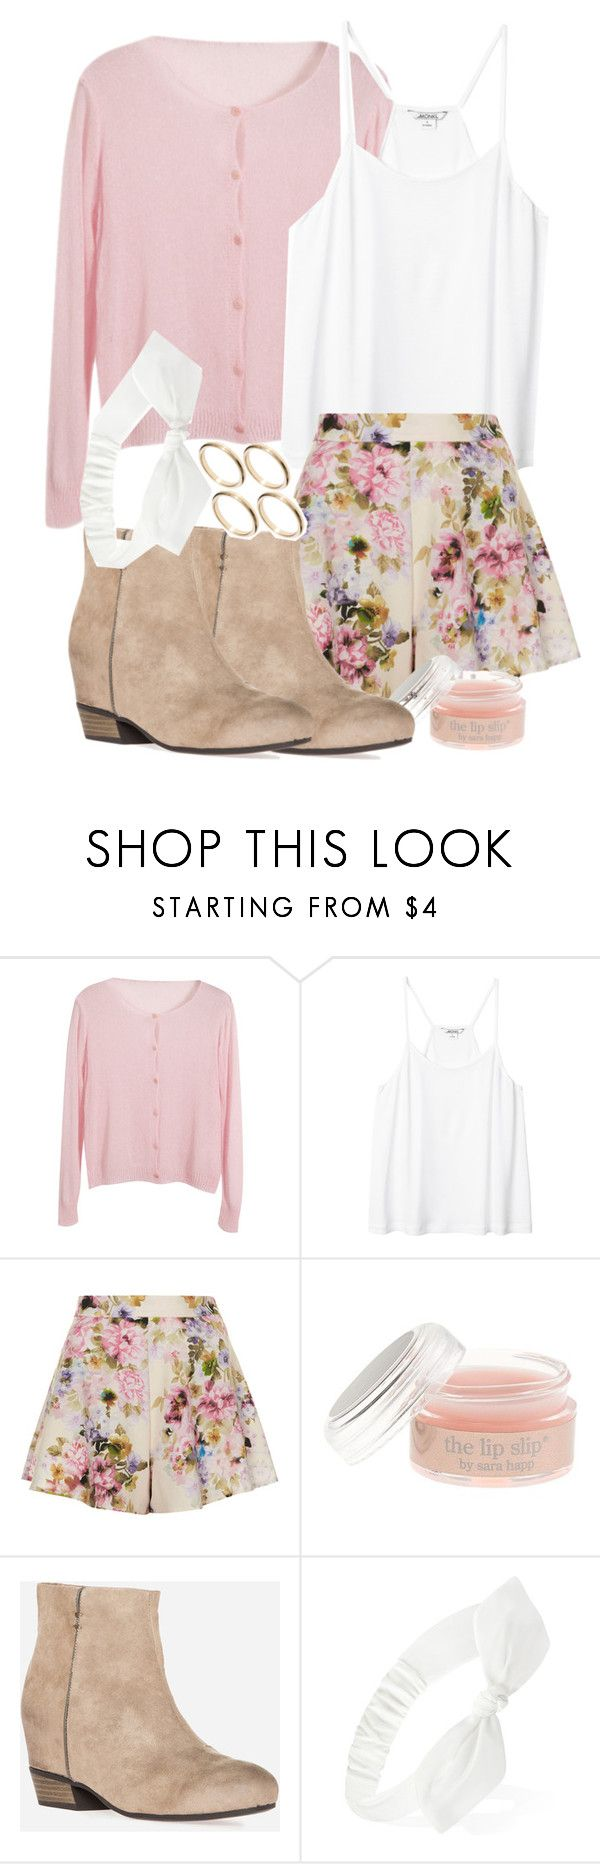 """""""Lydia Inspired Affordable Barbecue Outfit"""" by veterization ❤ liked on Polyvore featuring Chicnova Fashion, Monki, Oh My Love, J.Crew, Forever 21 and ASOS"""